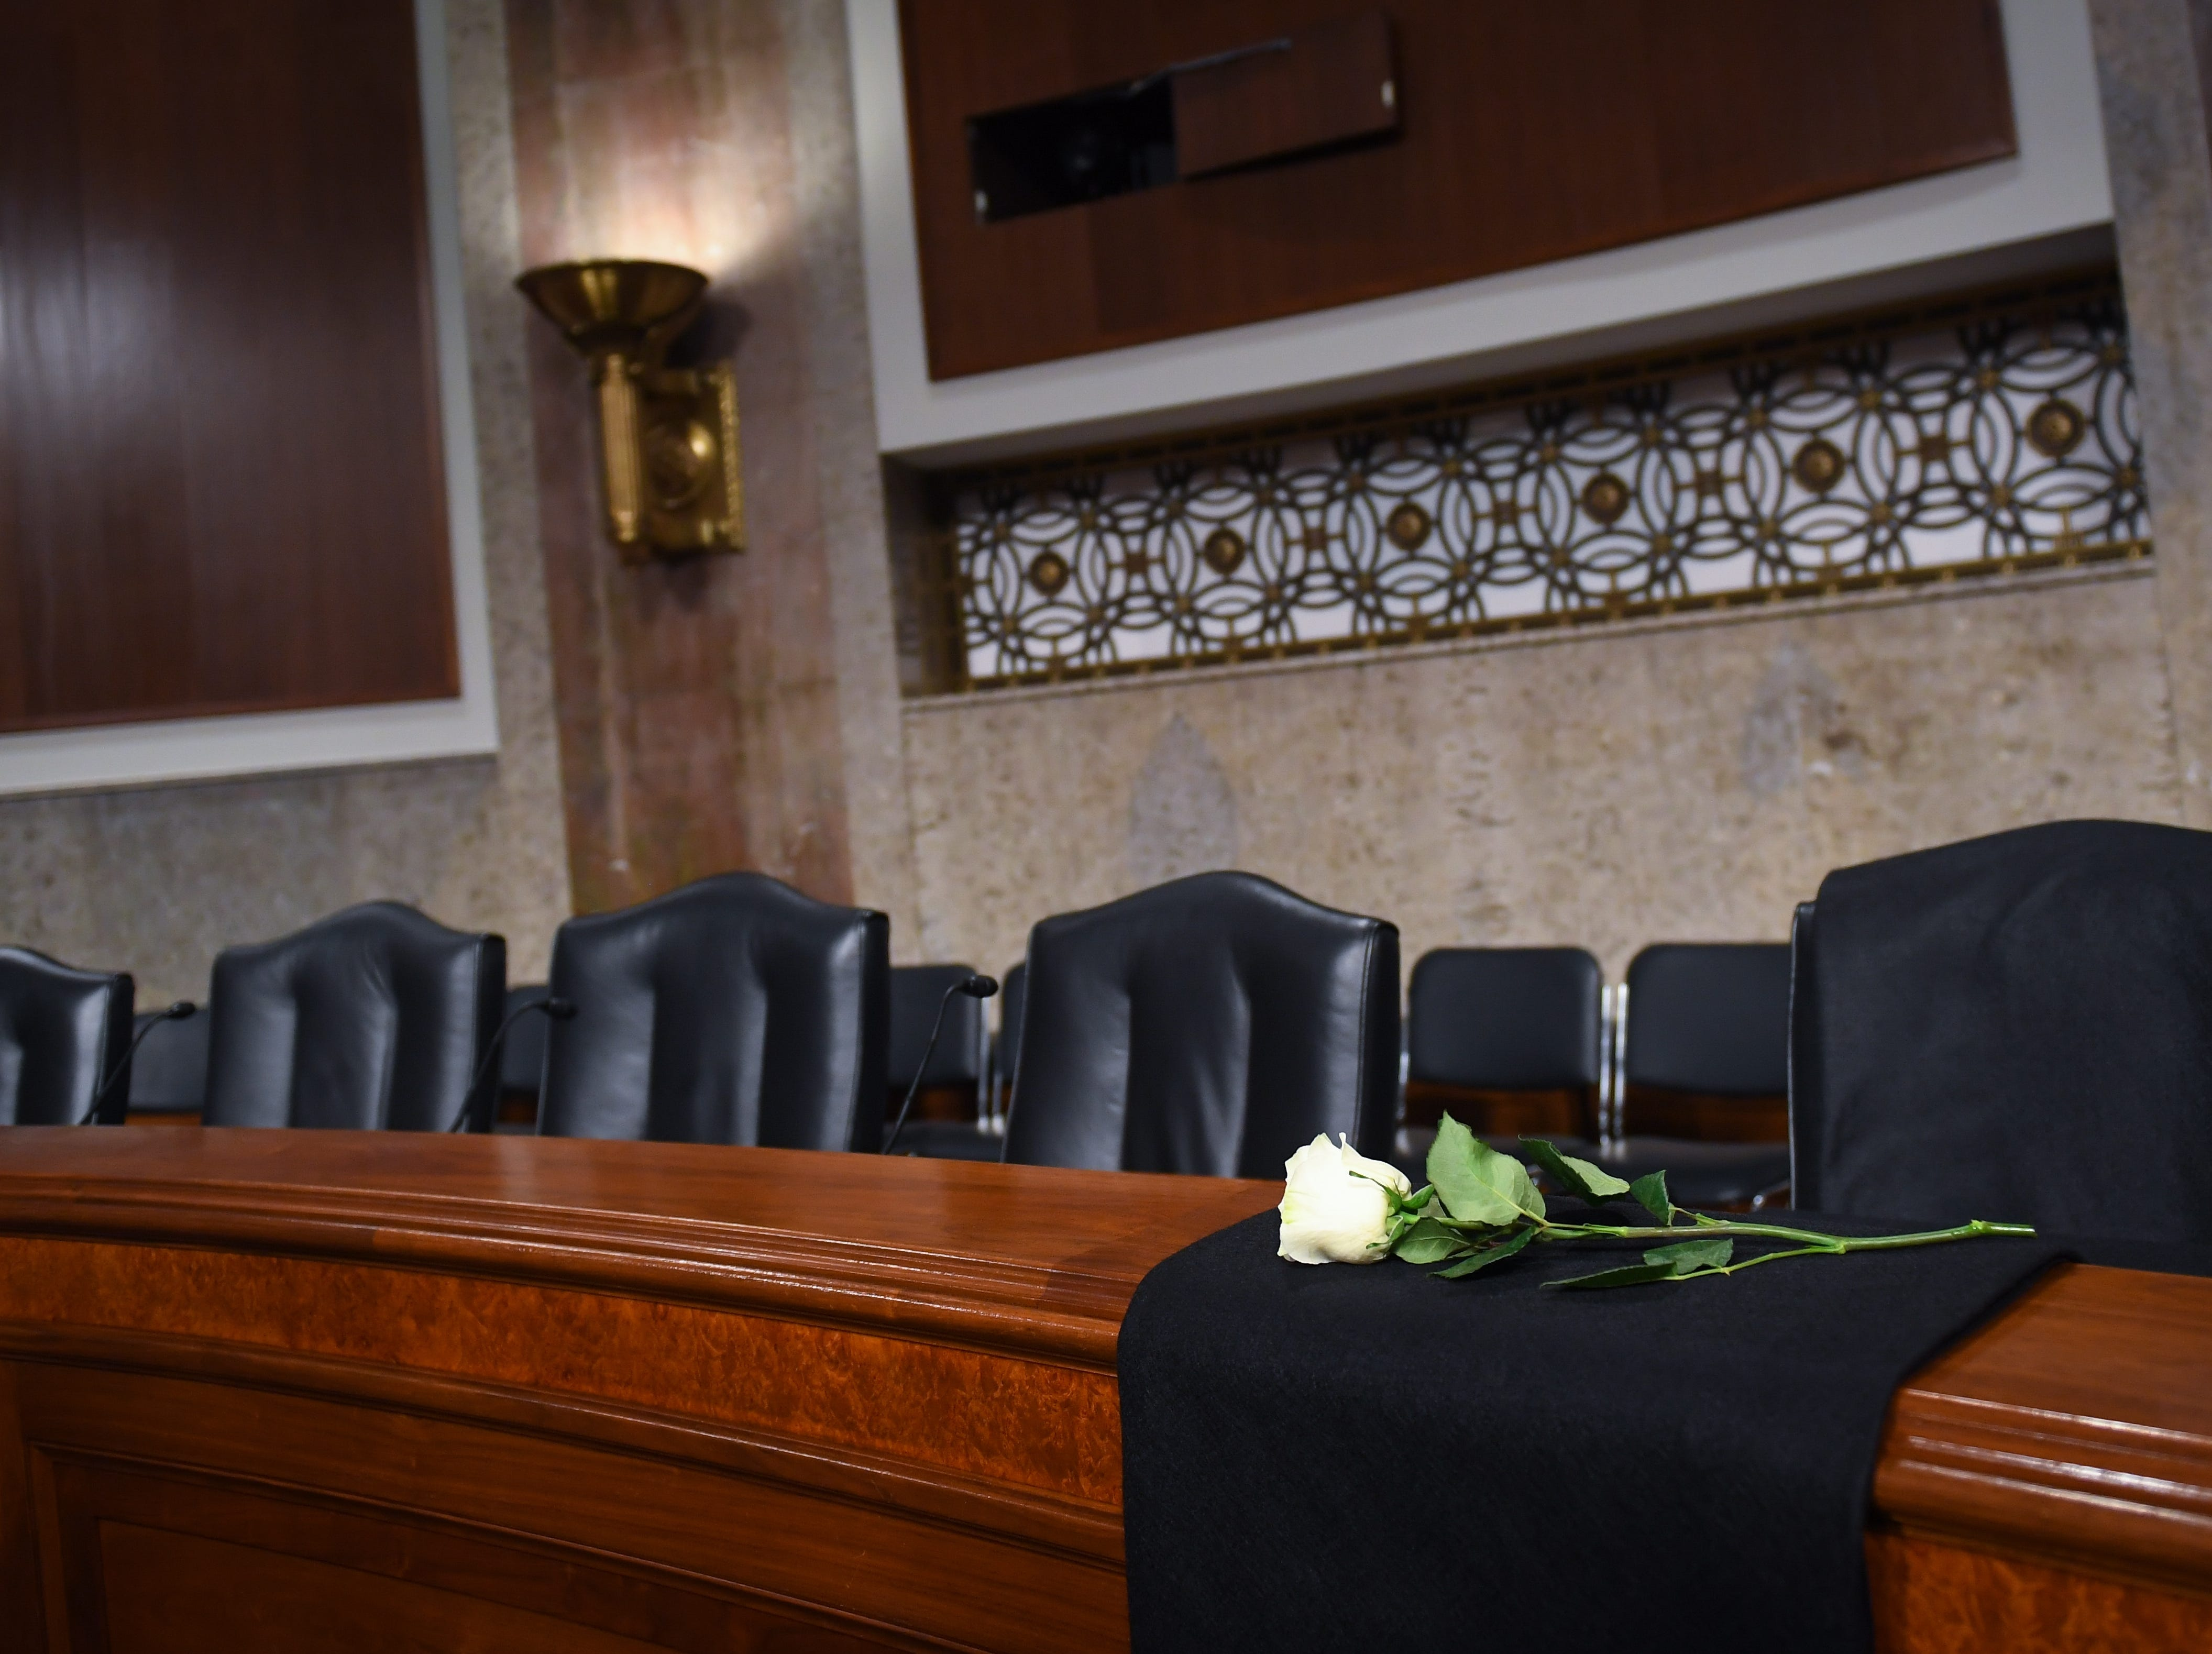 A white rose in place in remembrance of committee member Sen. John McCain before Sheryl Sandberg, chief operating officer of Facebook Inc., and Jack Dorsey, chief executive officer of Twitter Inc., would testify before the Senate Select Committee on Intelligence during a hearing on Foreign Influence Operations Use of Social Media Platforms on Sept. 5, 2018, in Washington